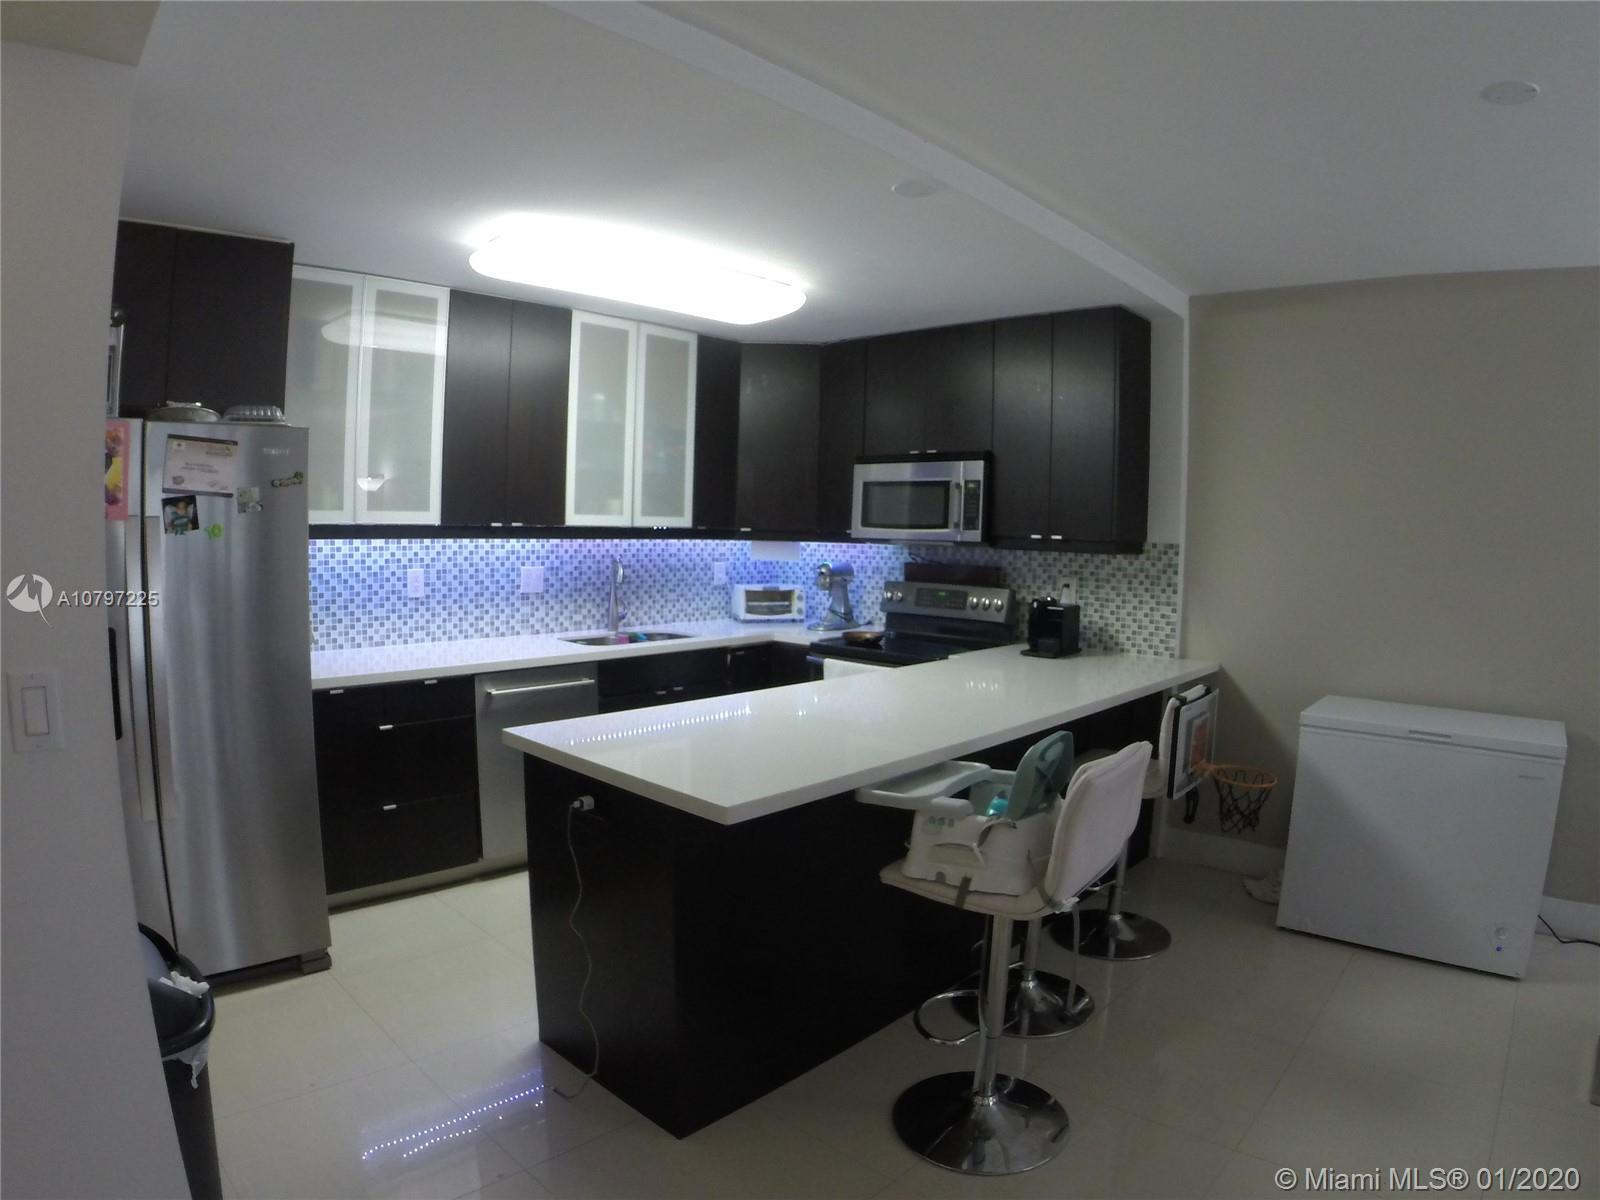 Modern and freshly remodeled kitchen with stainless steel appliances. Gorgeous beige tiling in the b